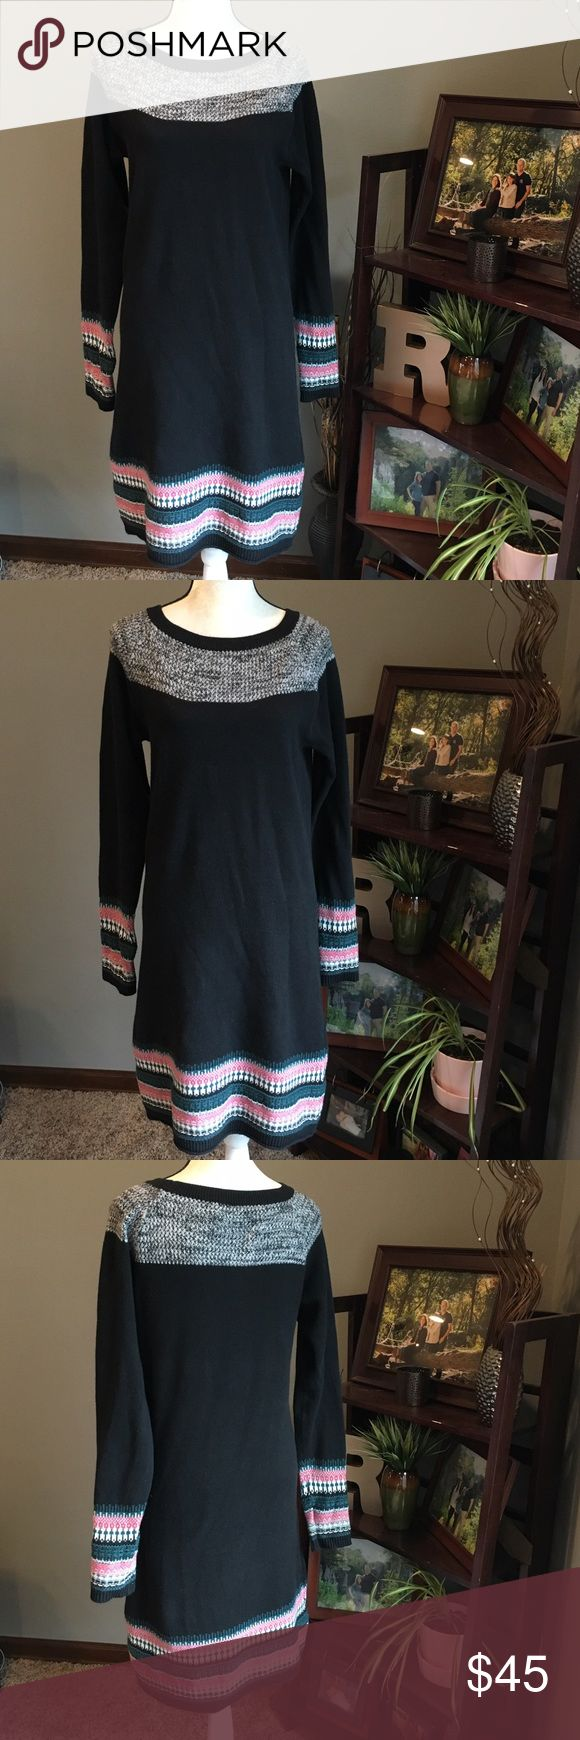 "Athleta Fair Isle Stripped Black Sweater Dress Athleta Fair Isle Stripped Black Sweater Dress.  Size large.  Black dress with Nordic fair isle trim on bottom of dress and cuffs of sleeves.  Fair isle trim is pink, white, green, black, and silver.  Scoop neck sweater dress with grey trim around the neck line.  Made of 75% cotton, 20% nylon, and 5% Cashmere. Measures about 19"" across the chest laying flat and about 40"" long from shoulder to bottom hem. Very beautiful and perfect with a pair of…"